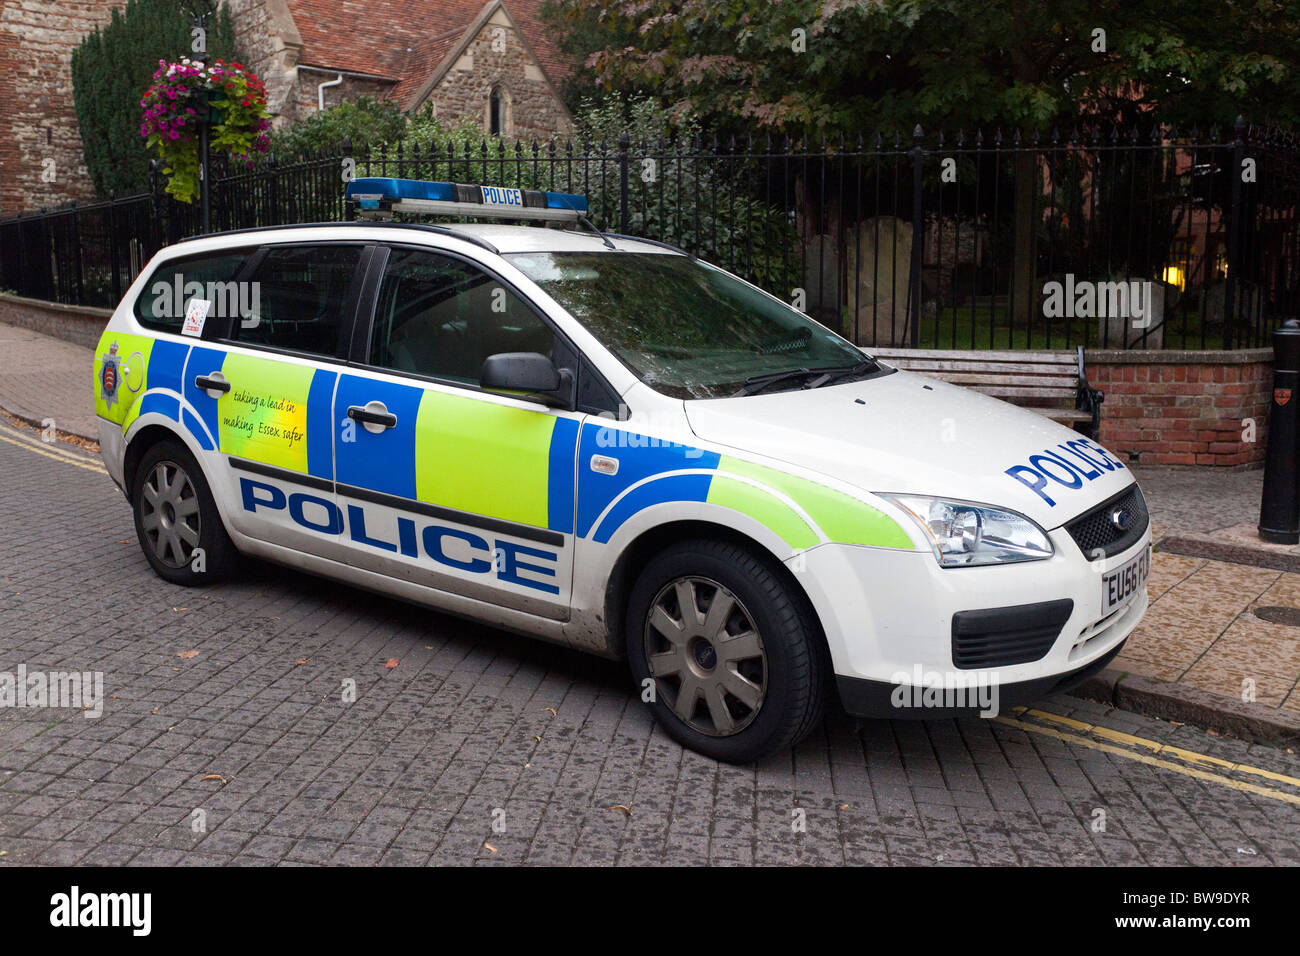 police car parked in a street uk stock photo royalty. Black Bedroom Furniture Sets. Home Design Ideas